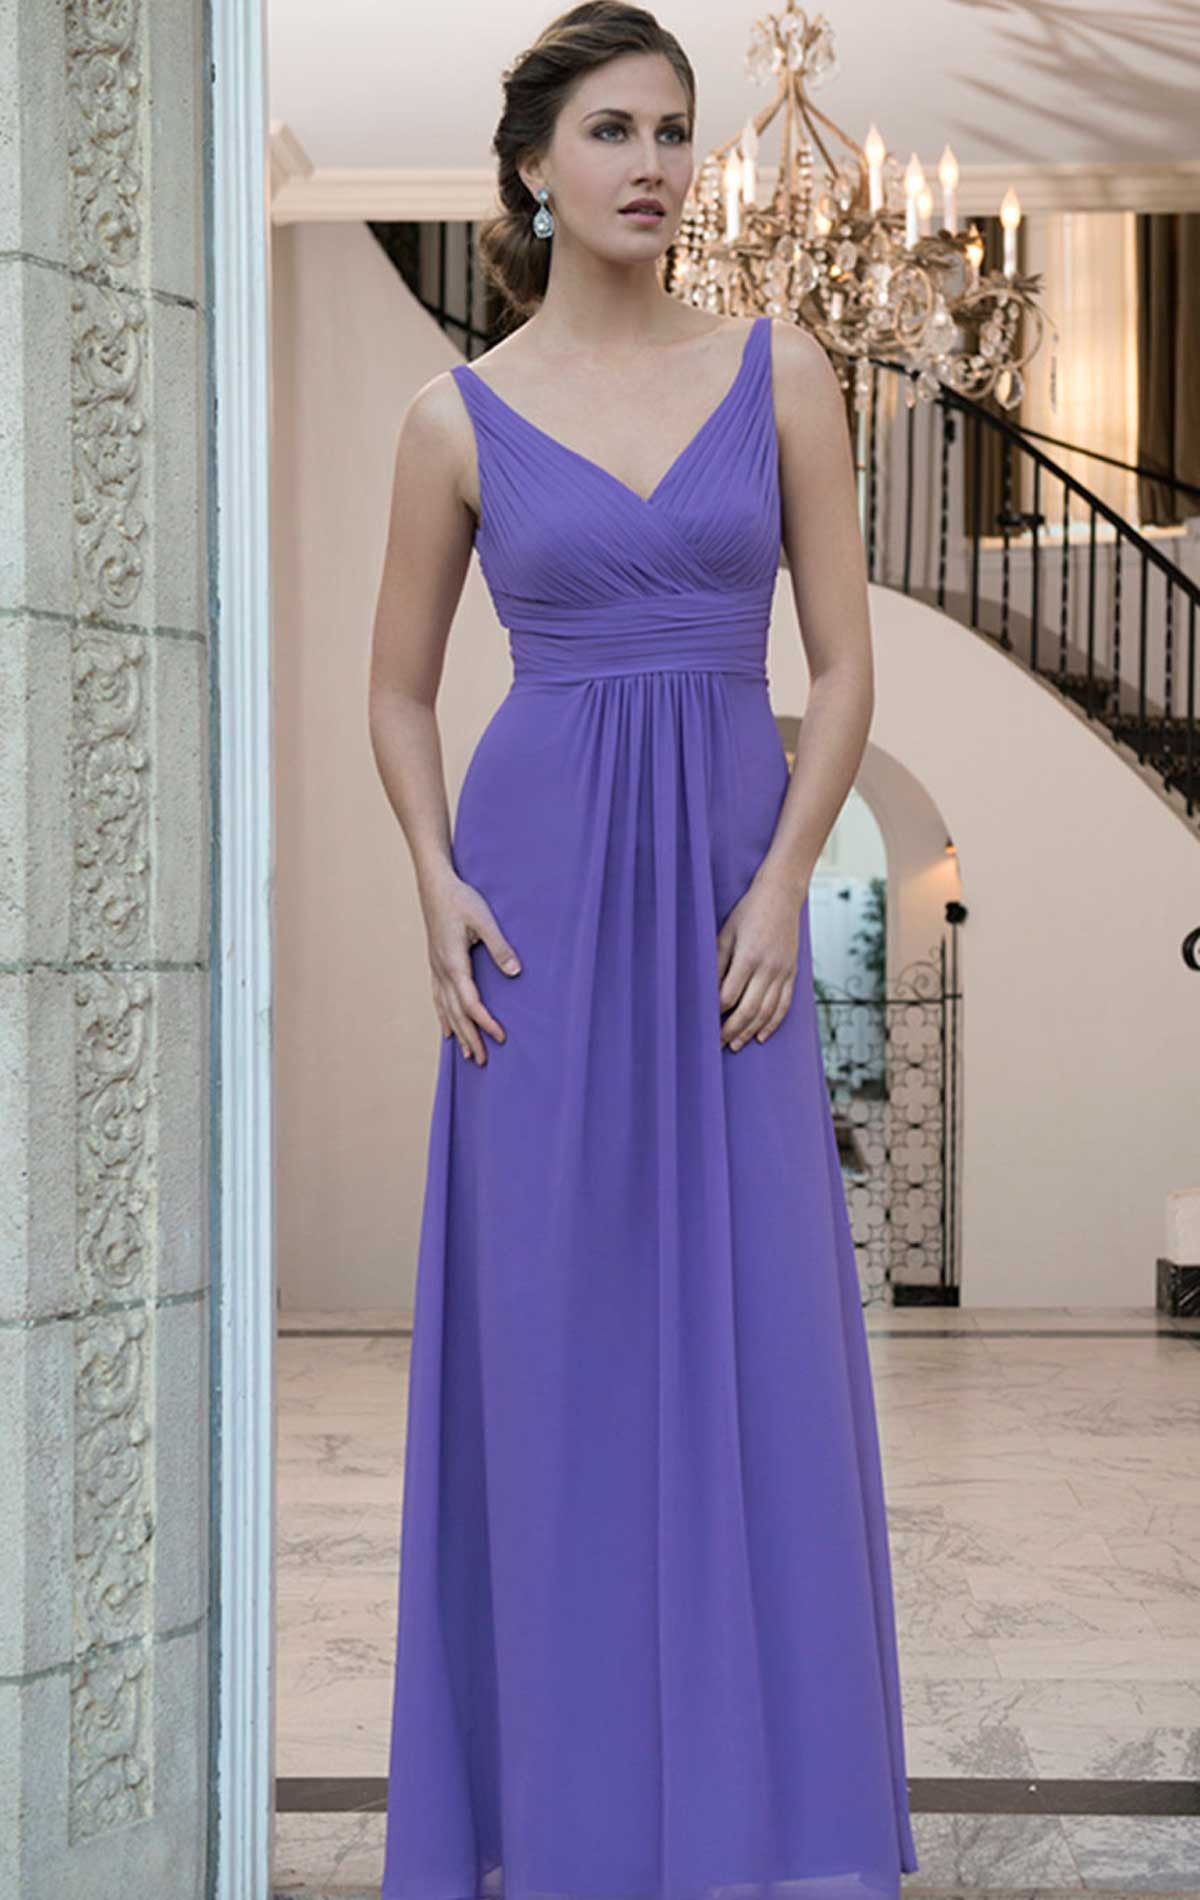 Chiffon Bridesmaid Dress with Straps | Blessings of Brighton